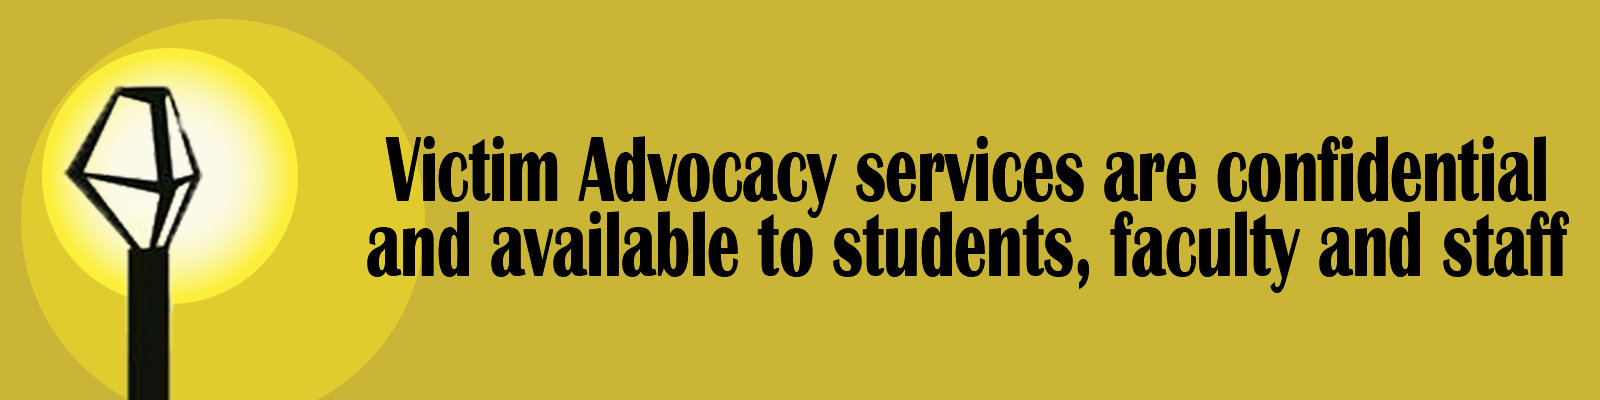 Victim Advocacy Services are confidential and available to students, faculty and staff